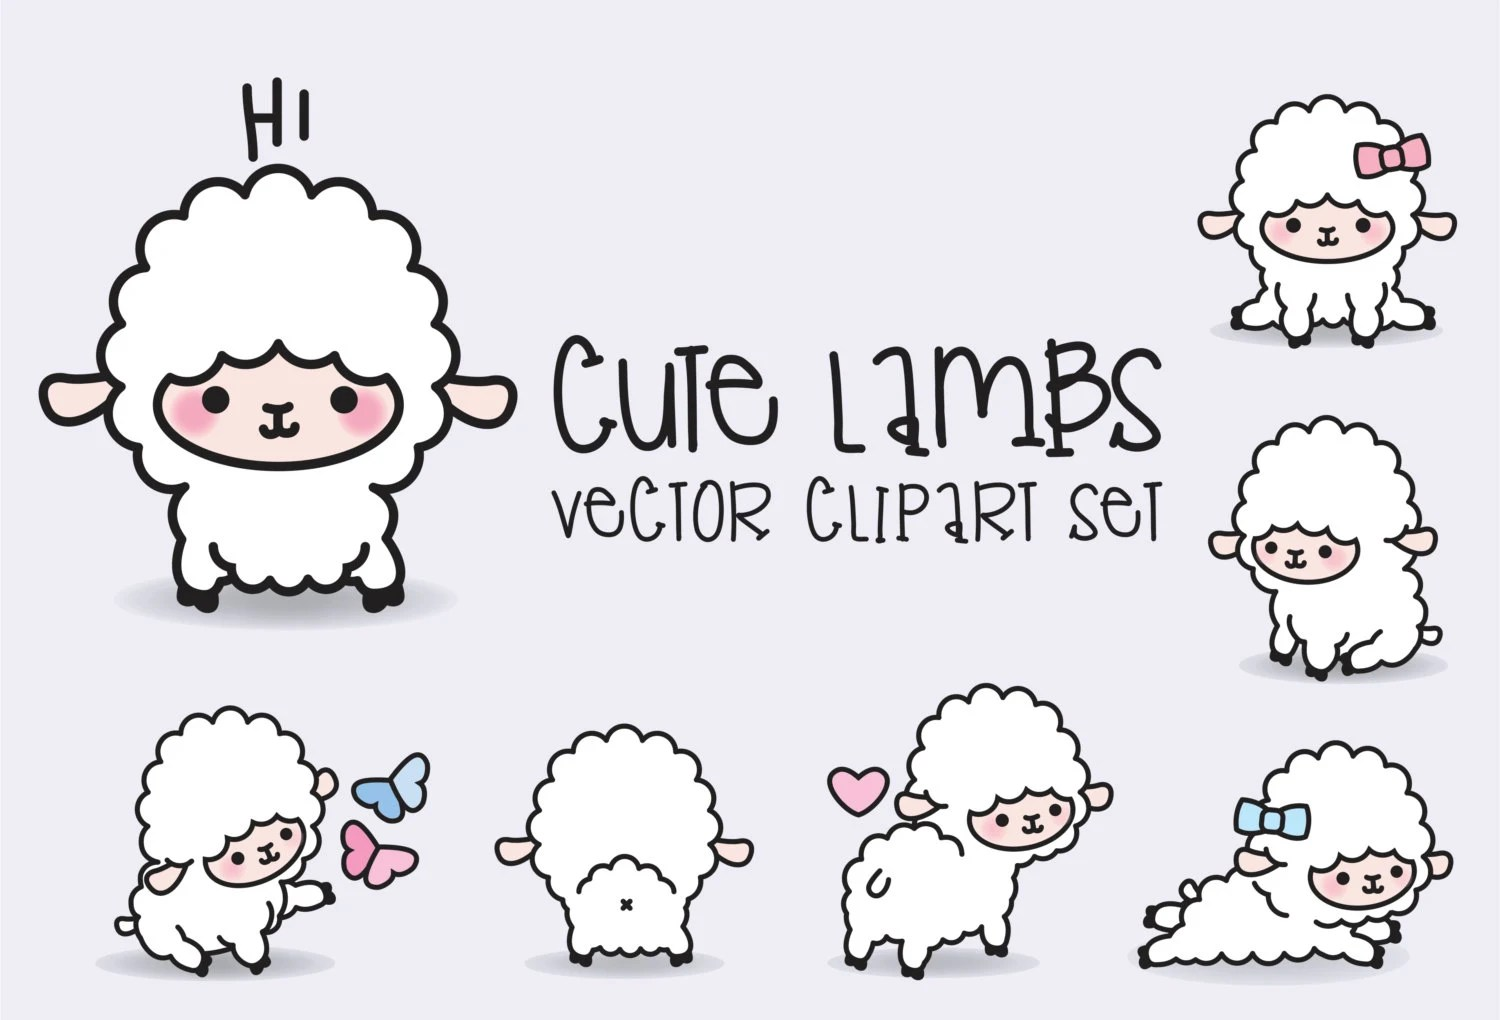 Cute Sheep Drawing Tumblr Premium Vector Clipart Kawaii Lambs Cute Lamb Clipart Set